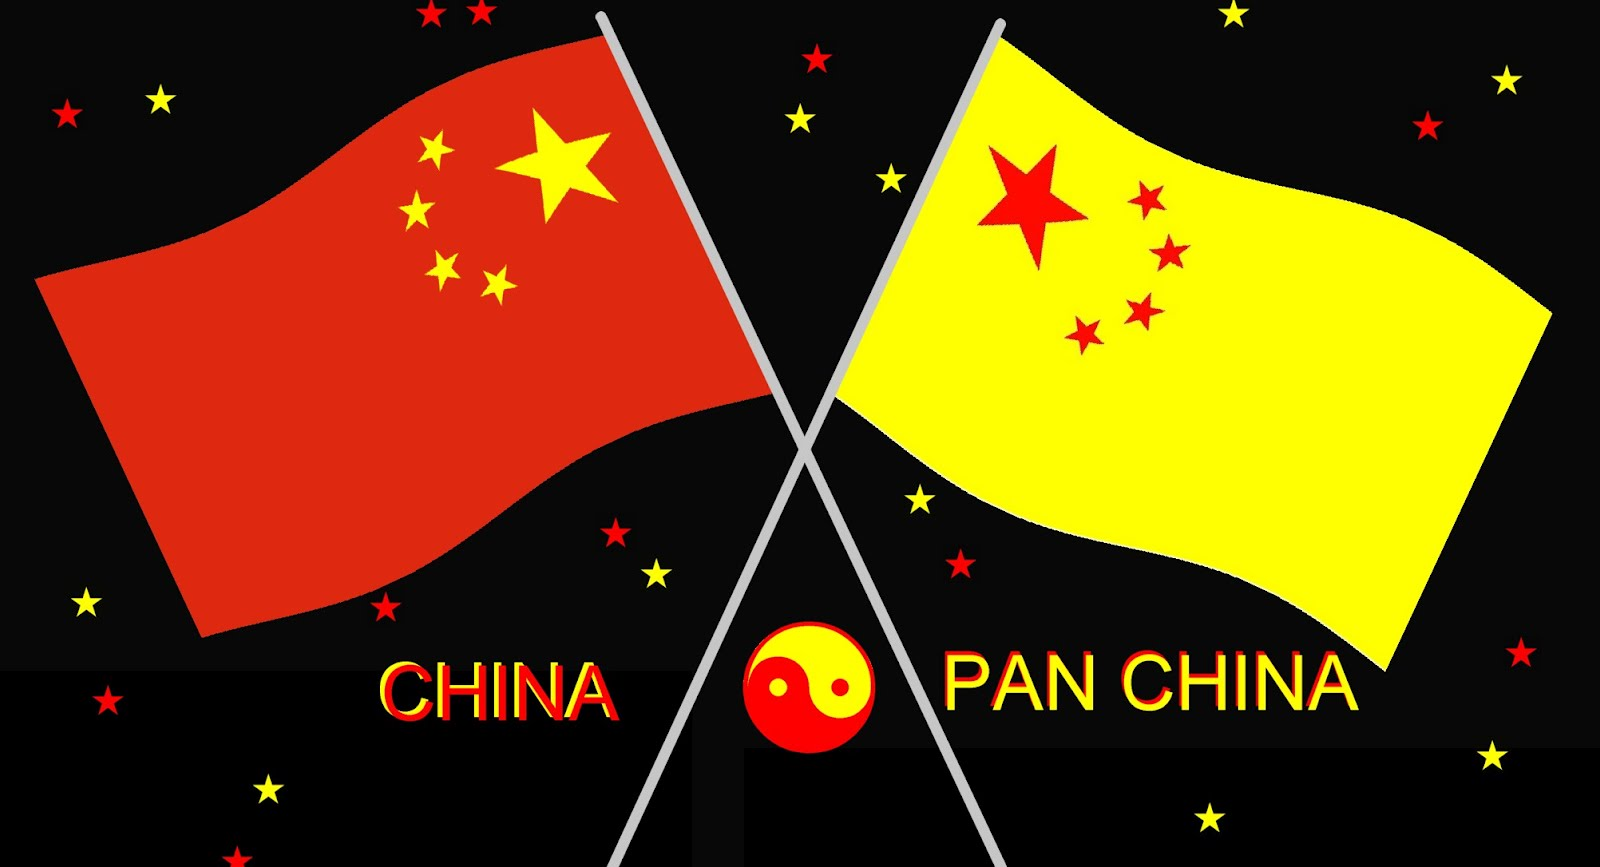 The Voice Of Vexillology Flags Heraldry Pan China Flag - China flag